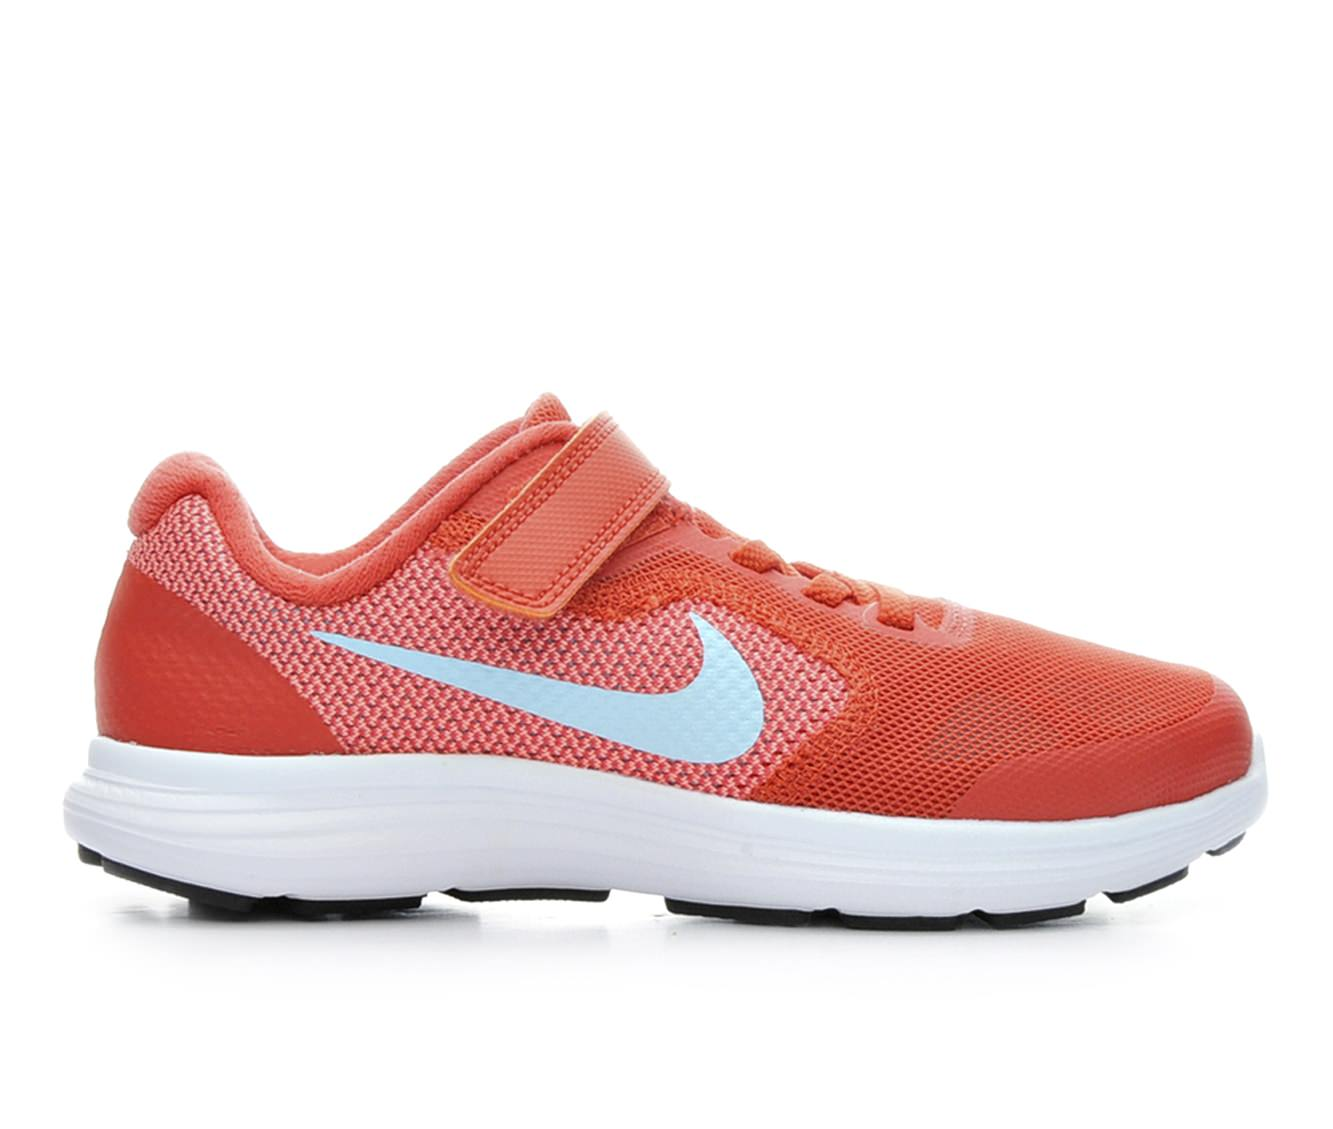 Girls' Nike Revolution 3 Athletic Shoes (Orange - Size 11.5 - Little Kid) 1610517